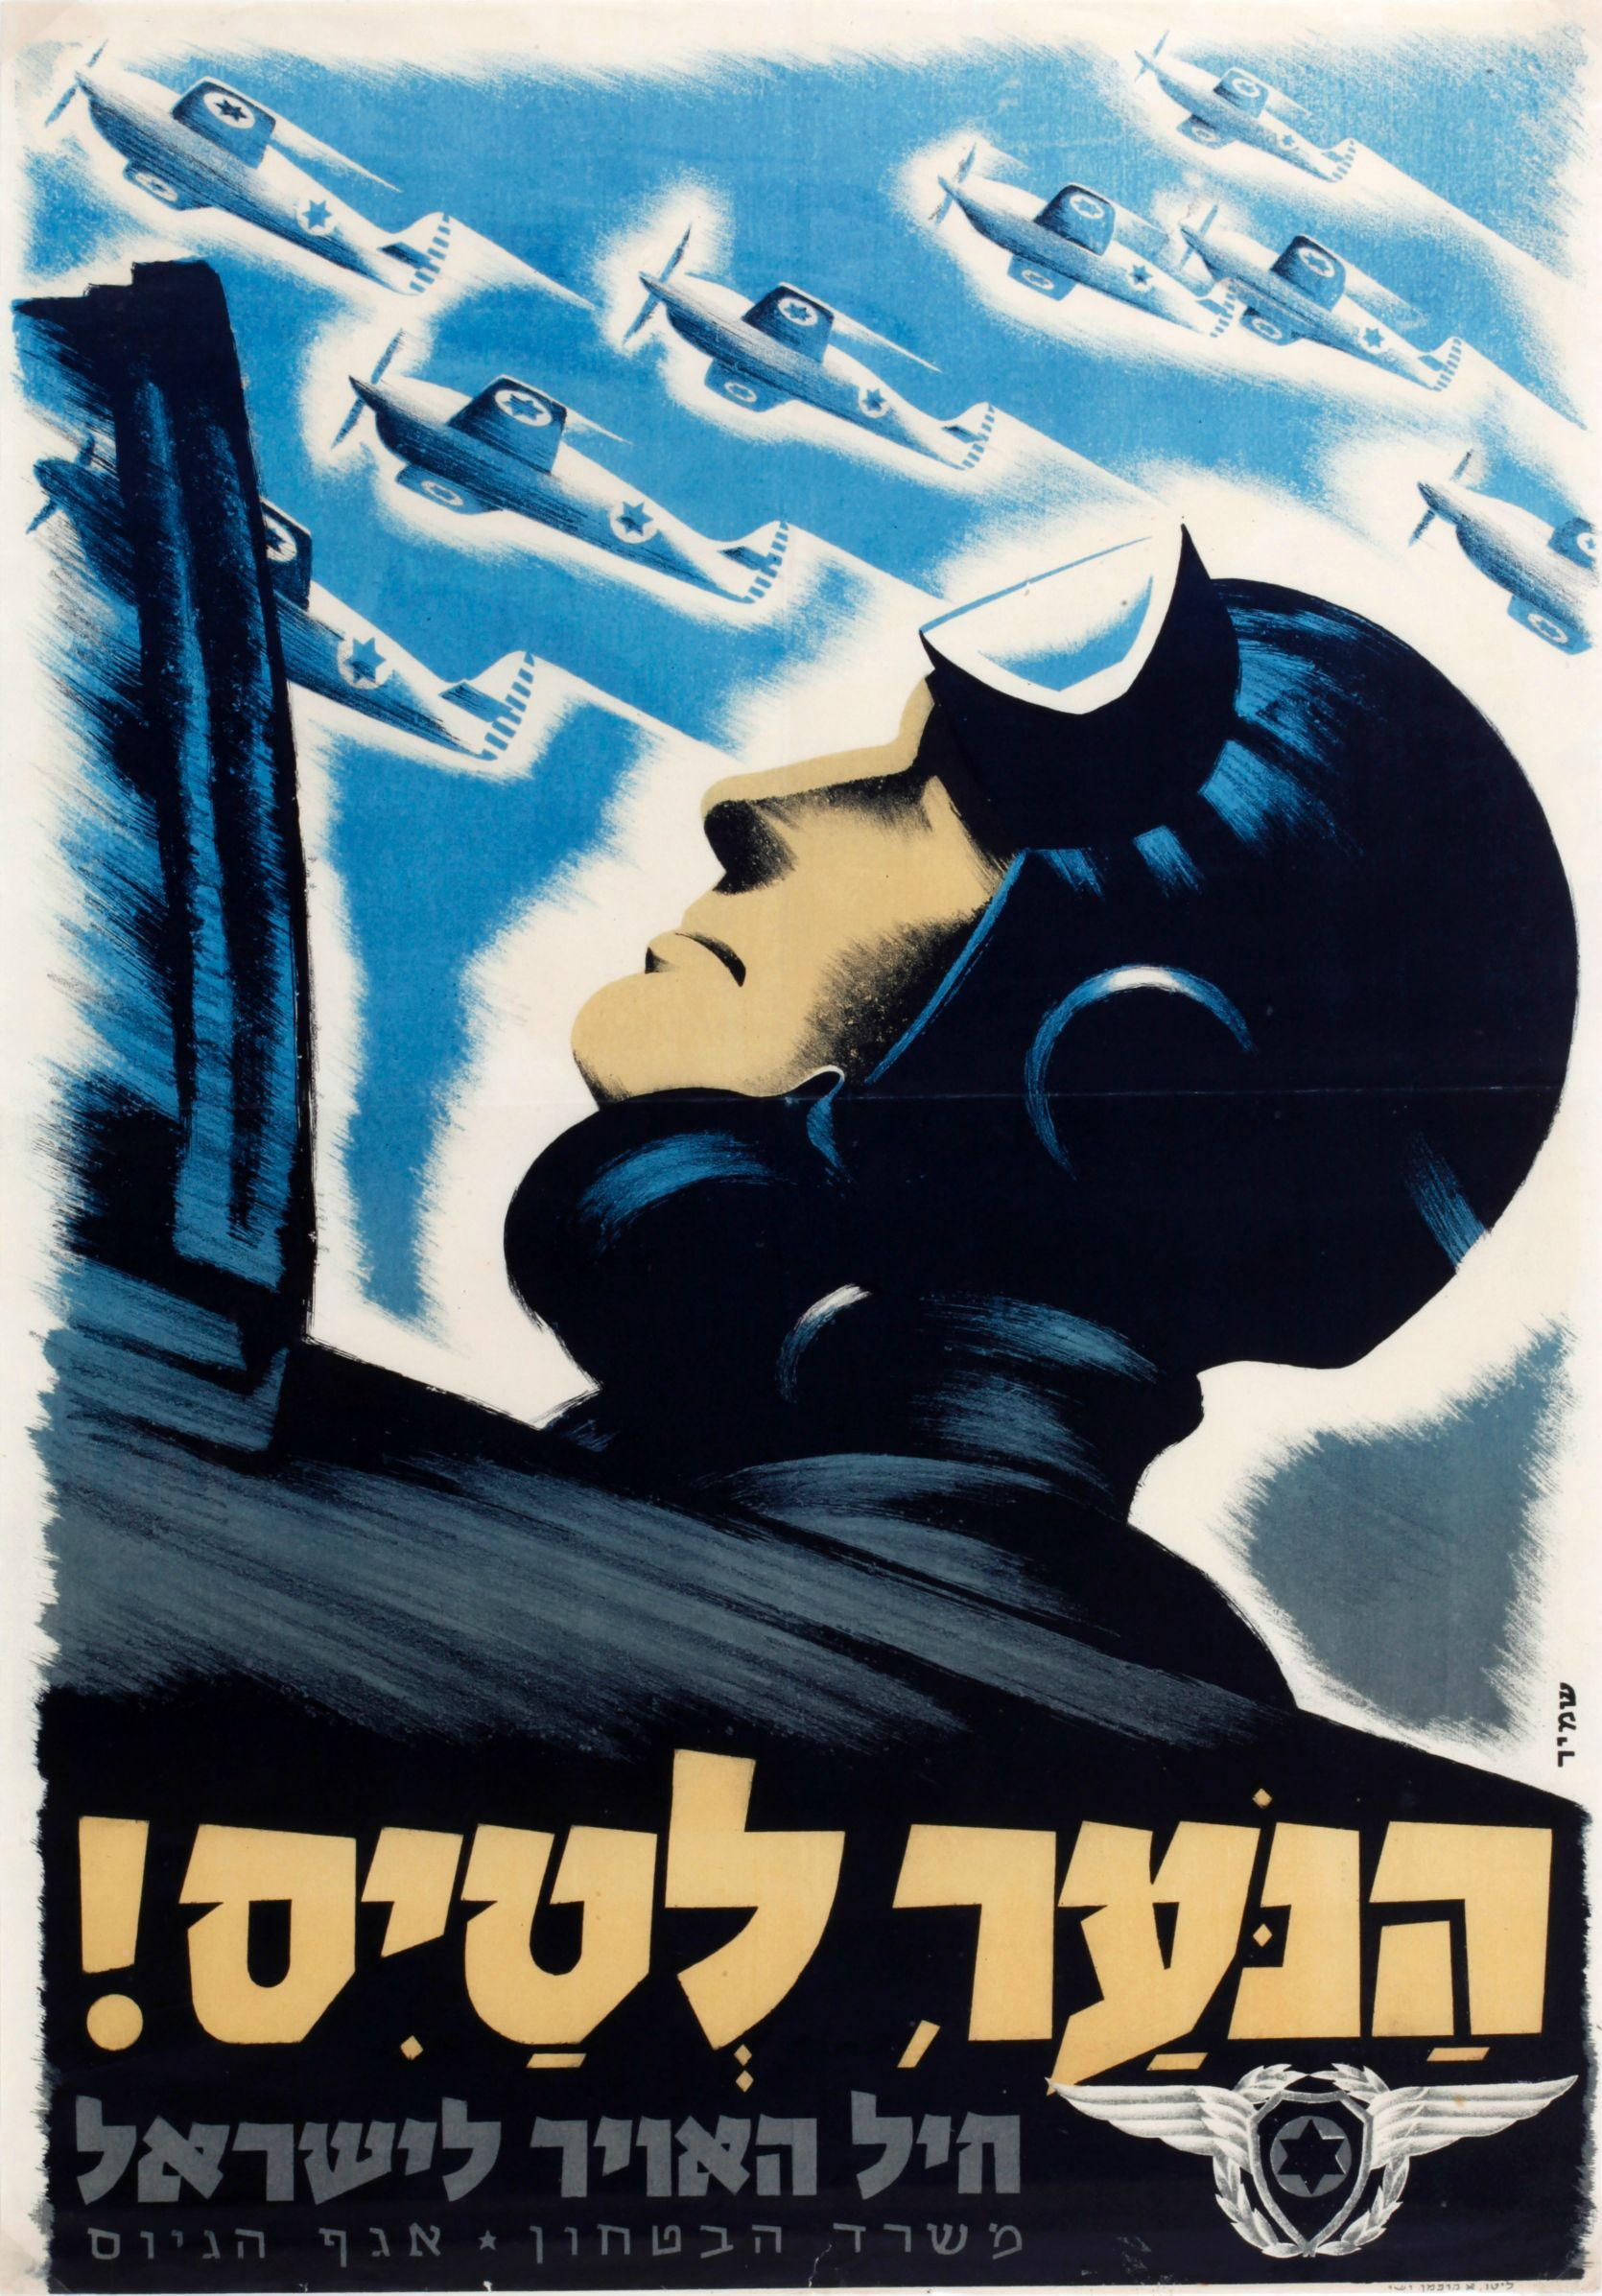 Httpwww Overlordsofchaos Comhtmlorigin Of The Word Jew Html: Israeli Airforce Poster (c. 1950?)